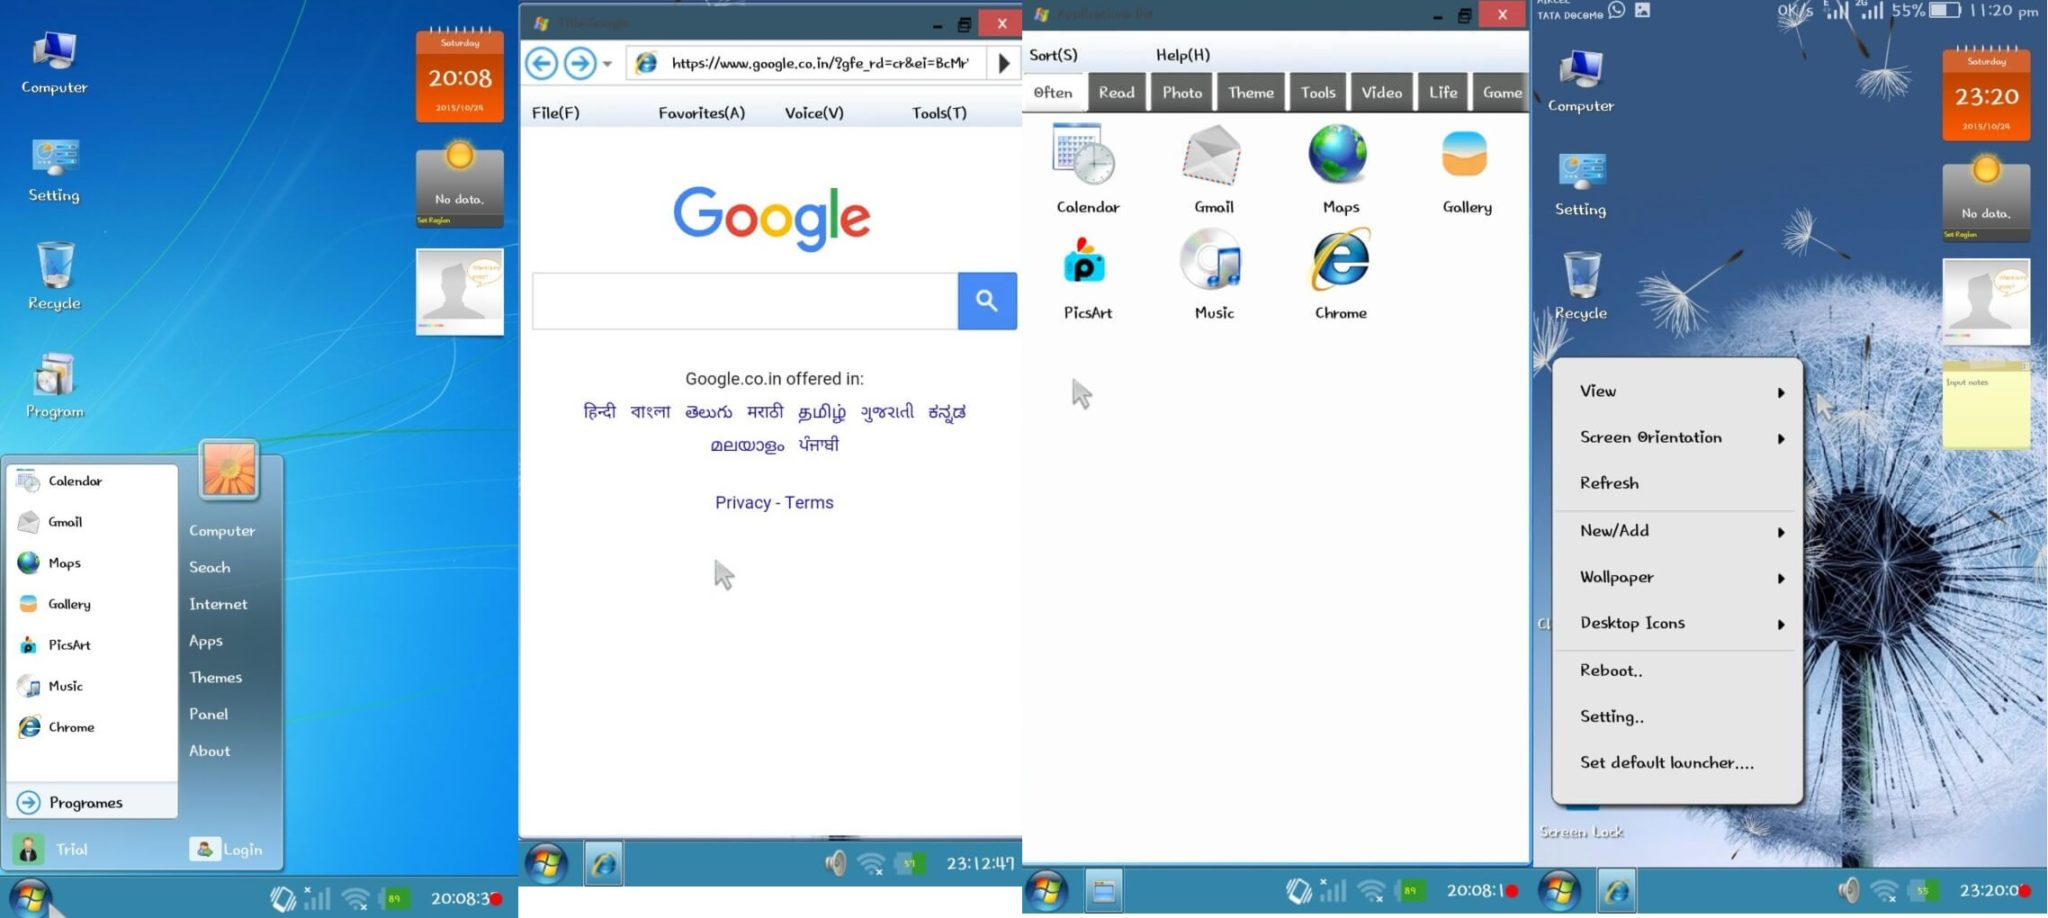 Windows 7 launcher for Android apk Free Download